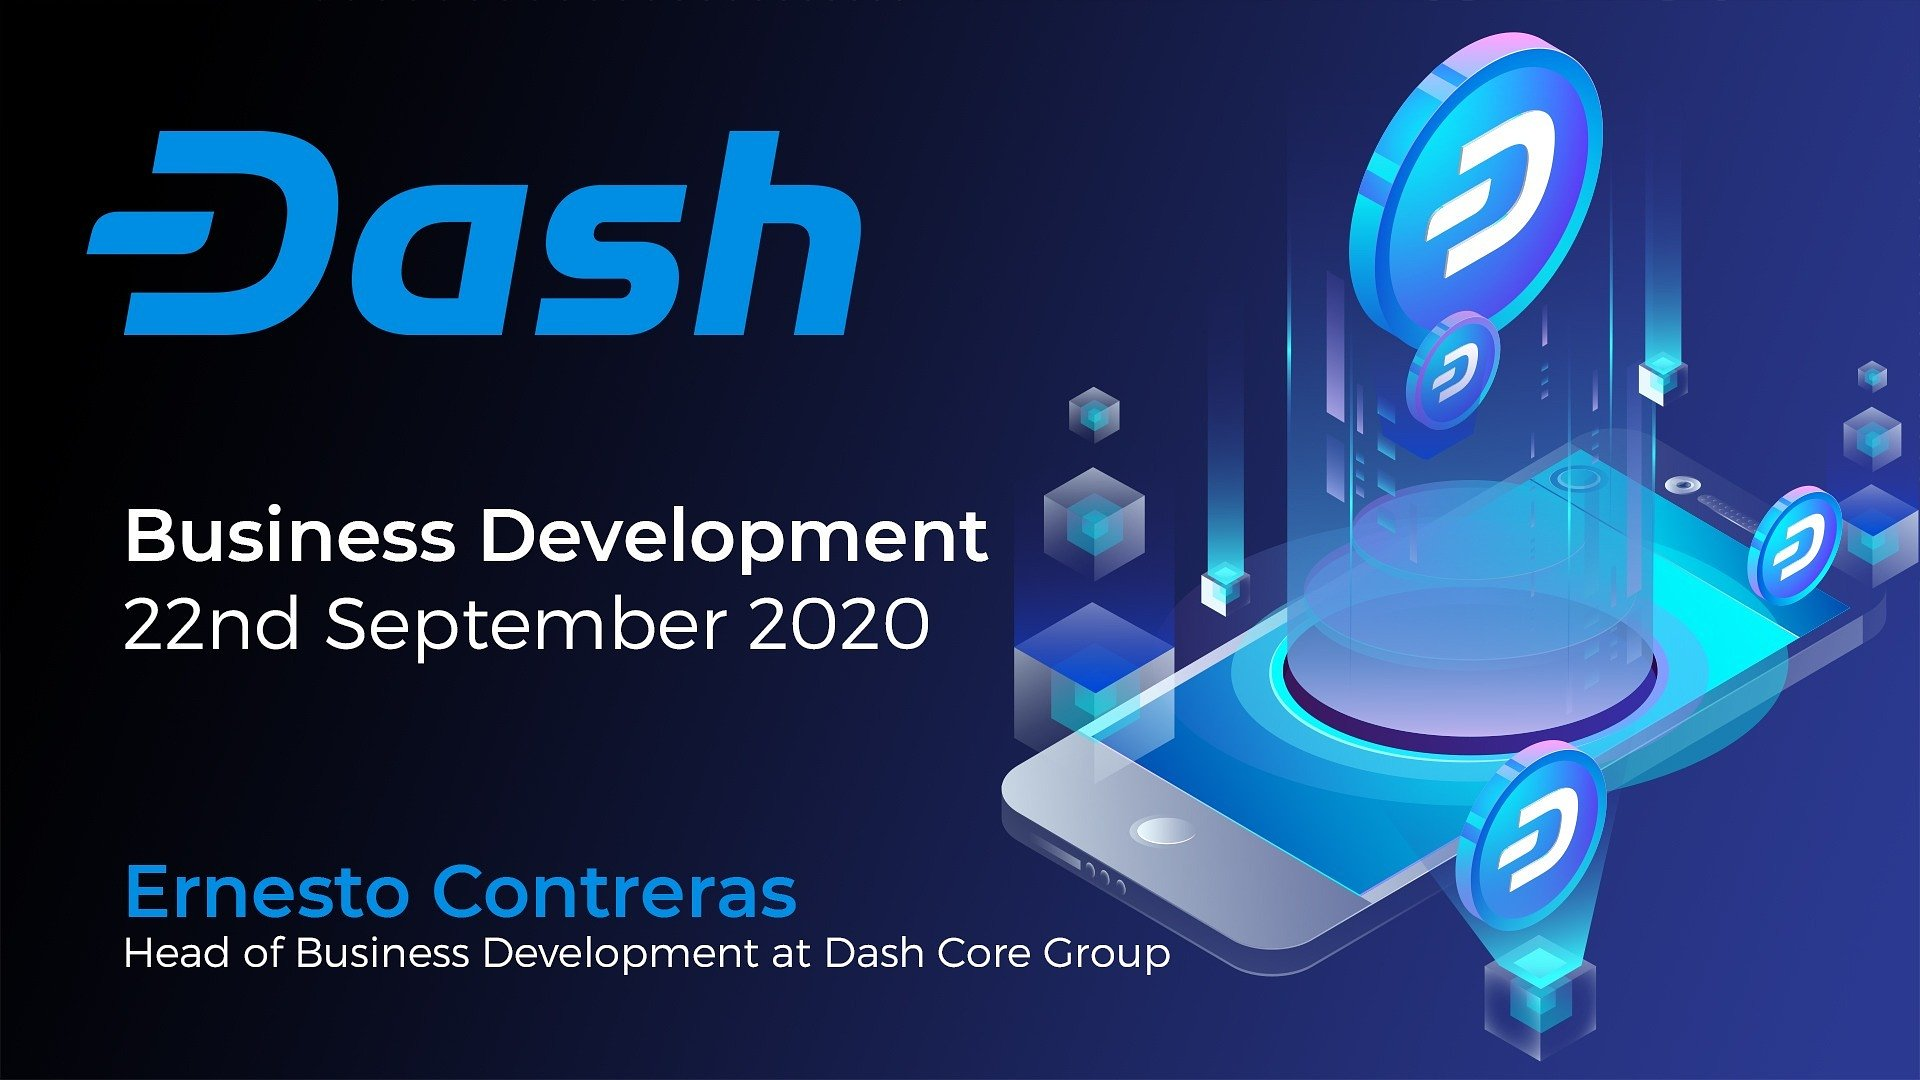 Dash Business Development Update - September 22nd